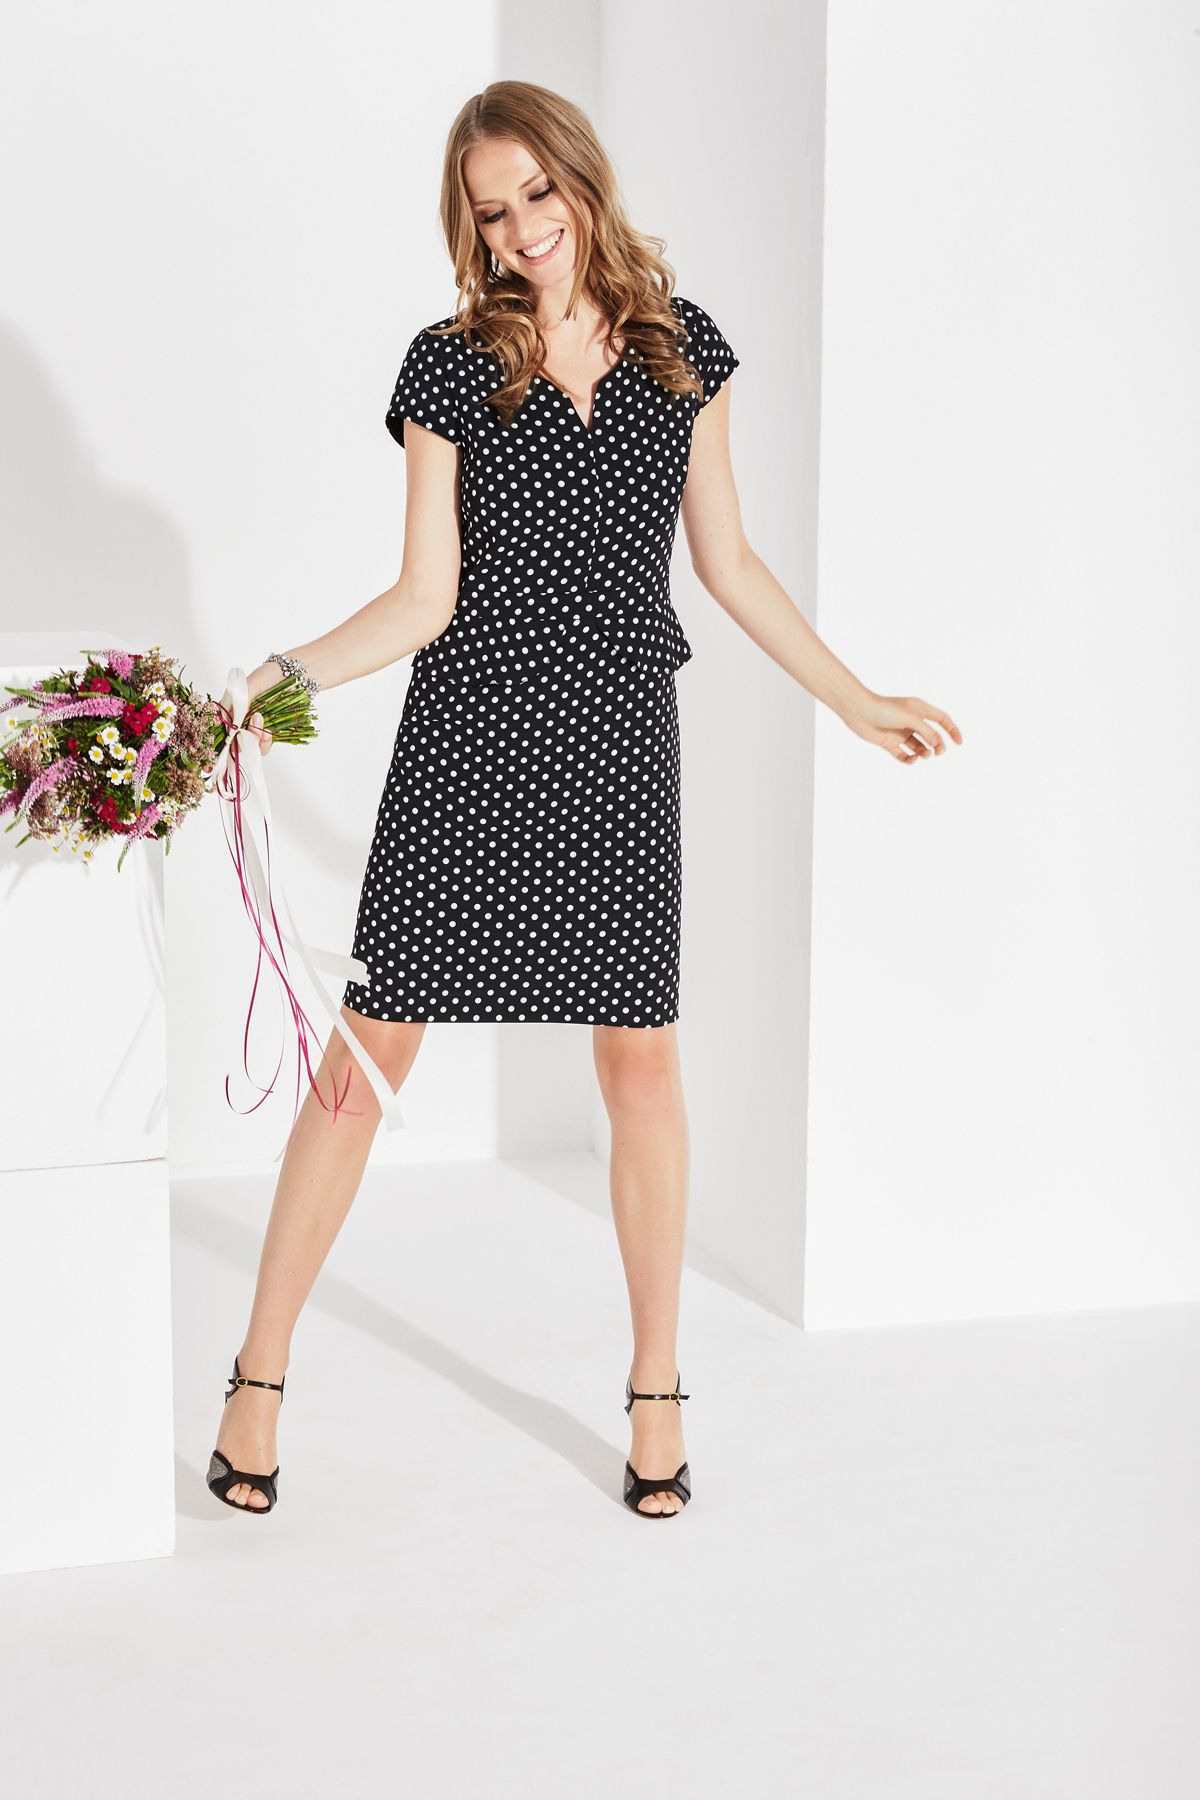 Comma Fashion  Dotted Dress  Wedding Outfit Inspiration